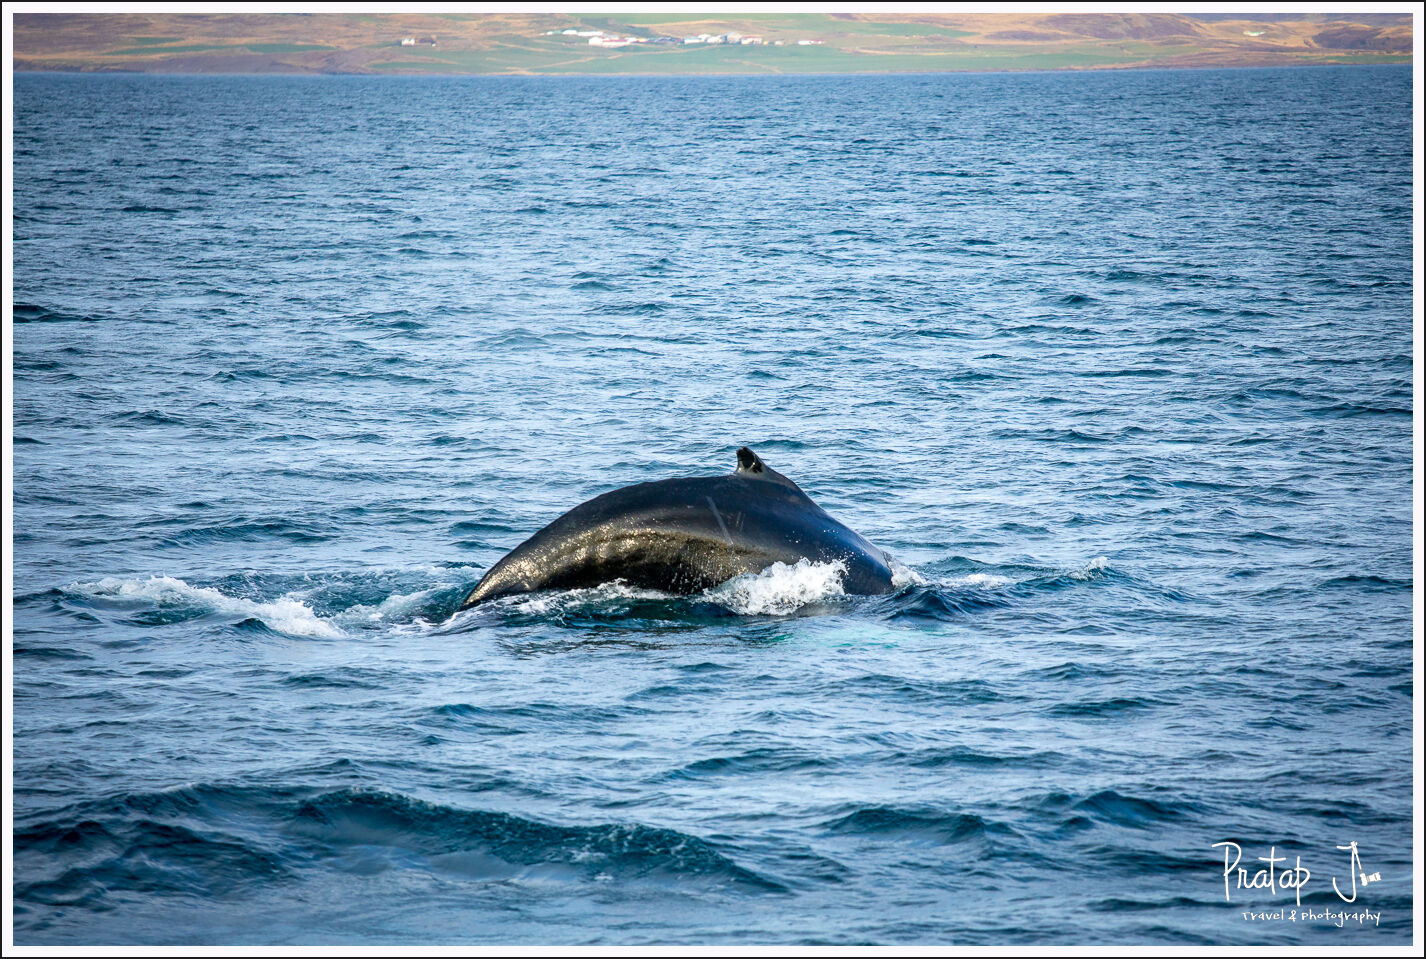 A hump back whale leaps over water